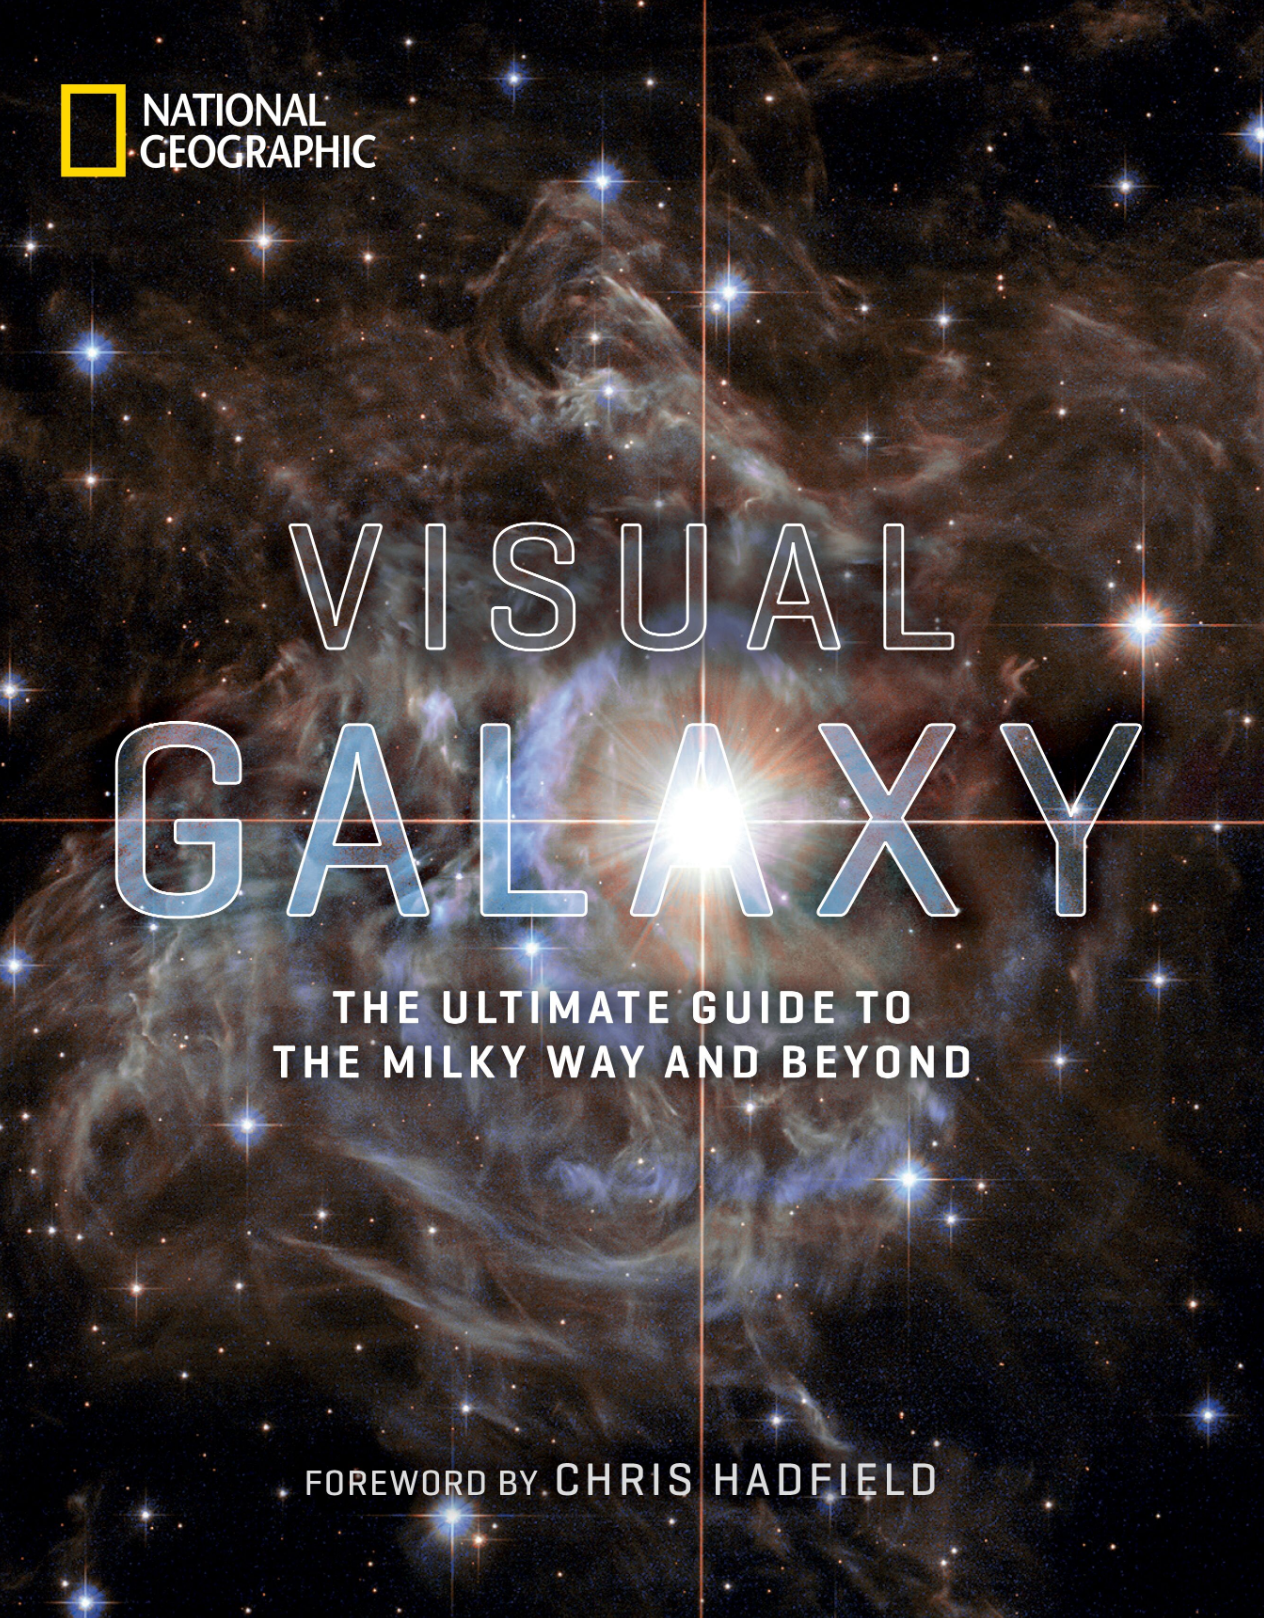 'Visual Galaxy: The Ultimate Guide to the Milky Way and Beyond'